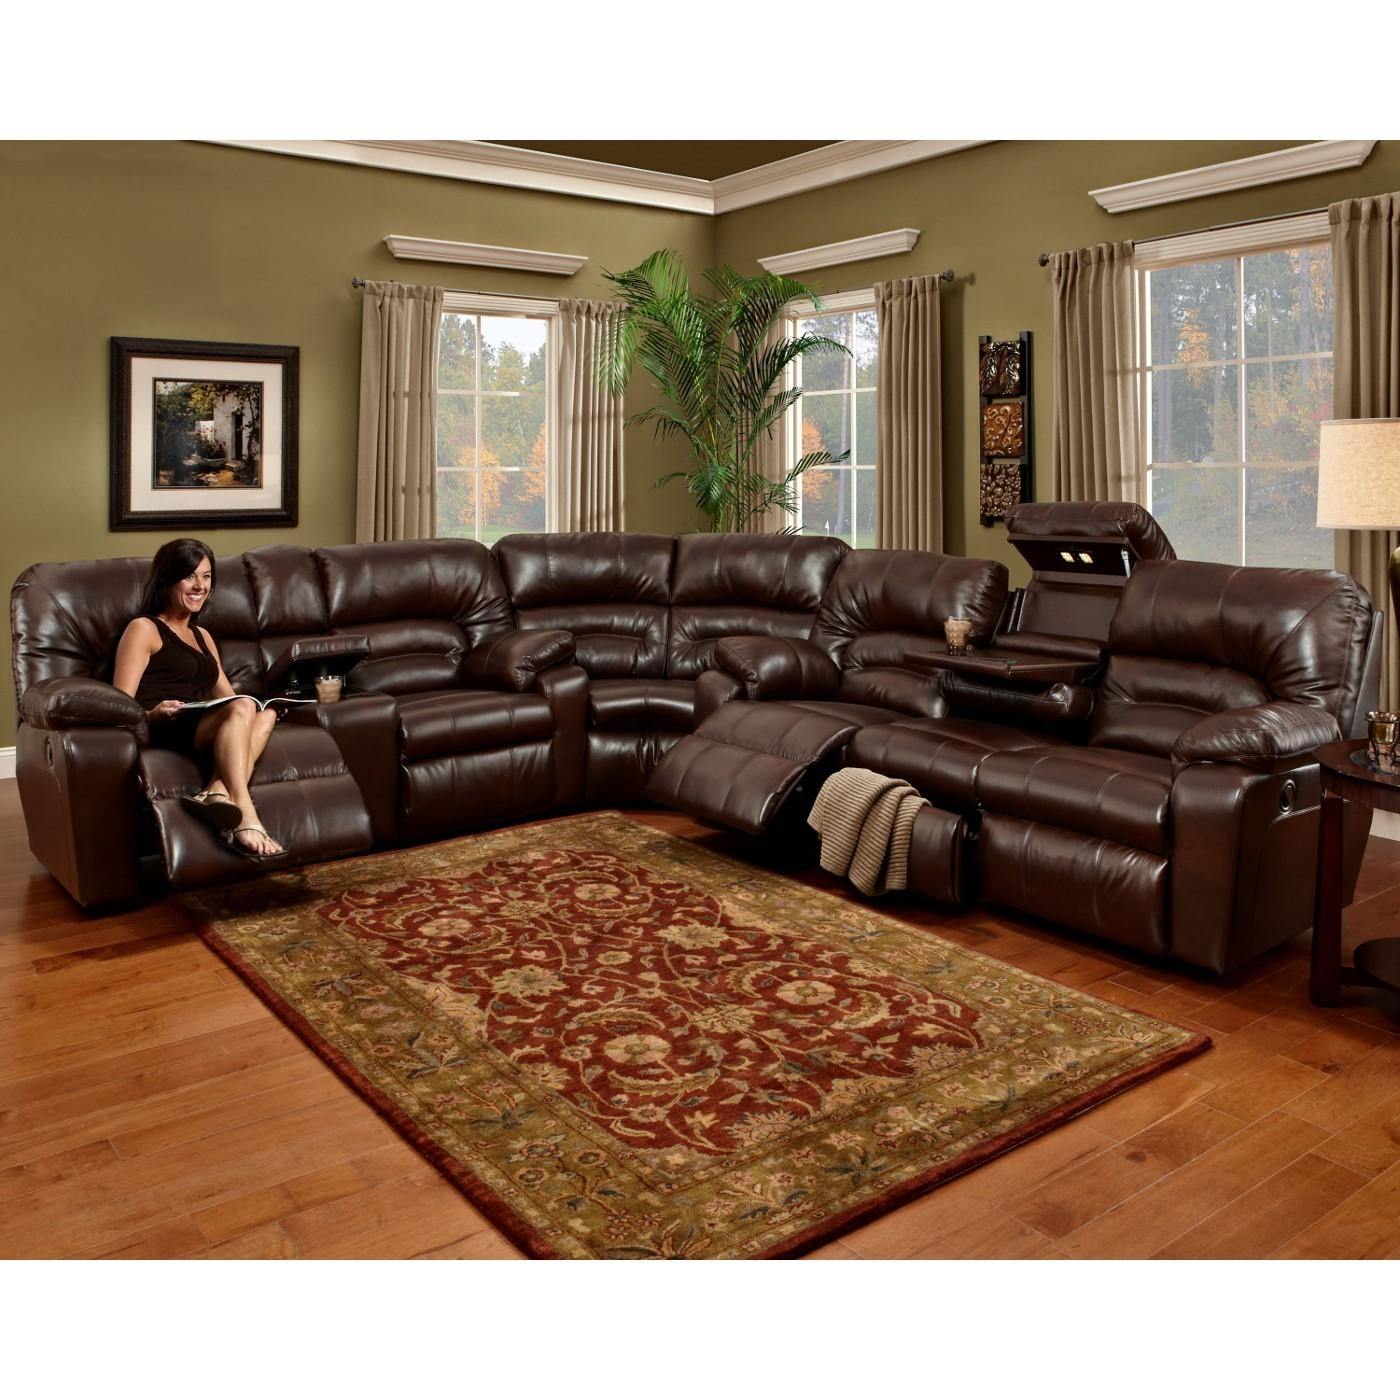 Media Room Sectional Sofas Artistic Color Decor Best With Media For Media Room Sectional Sofas (View 9 of 20)